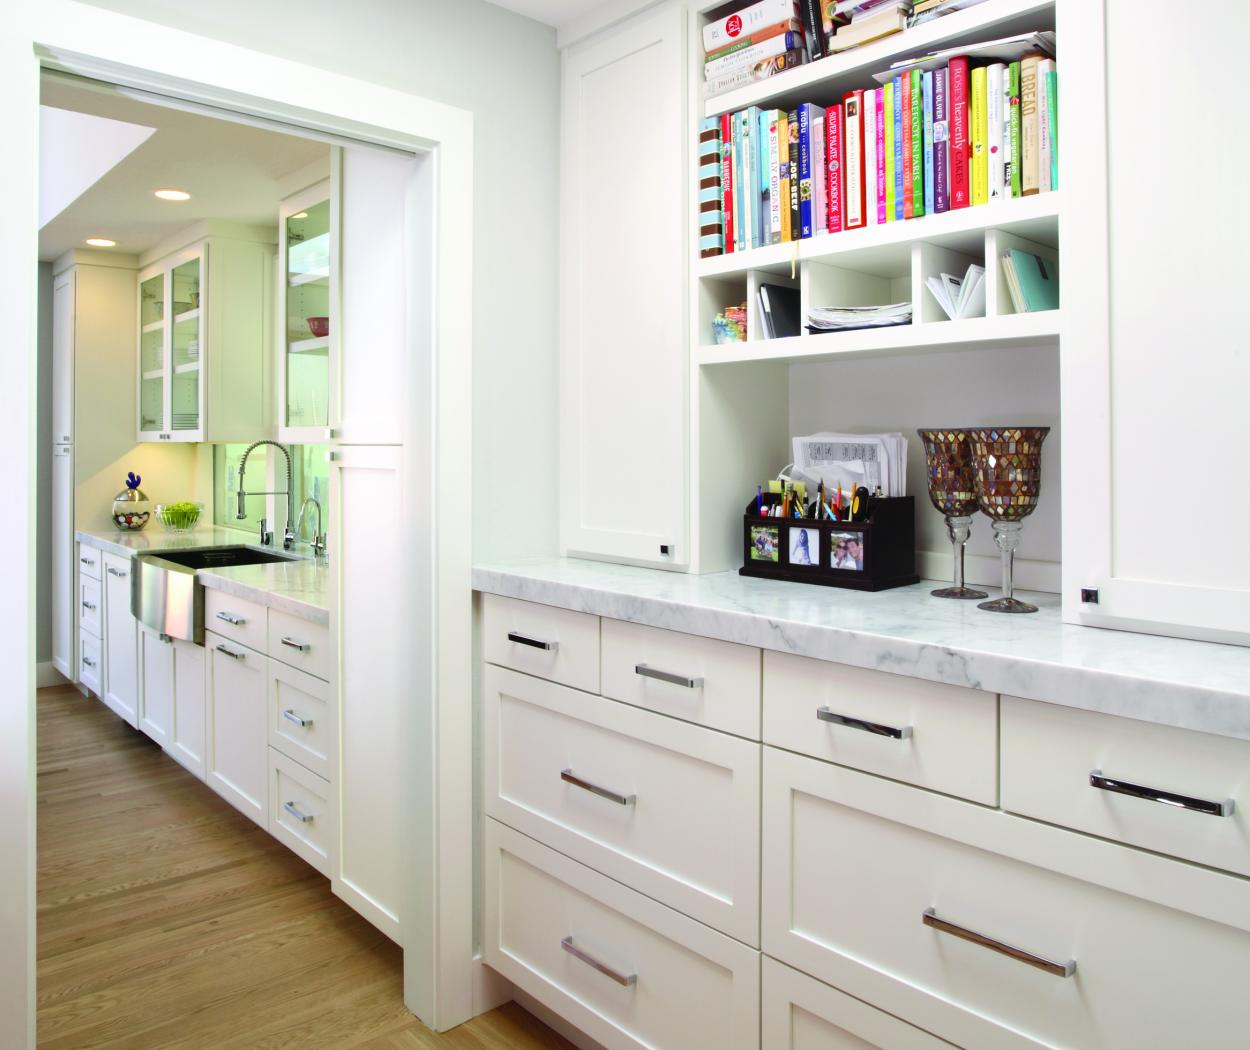 White Transitional, Shaker Style Built-In with Open Cubbies and Beautiful Marble Counter Tops